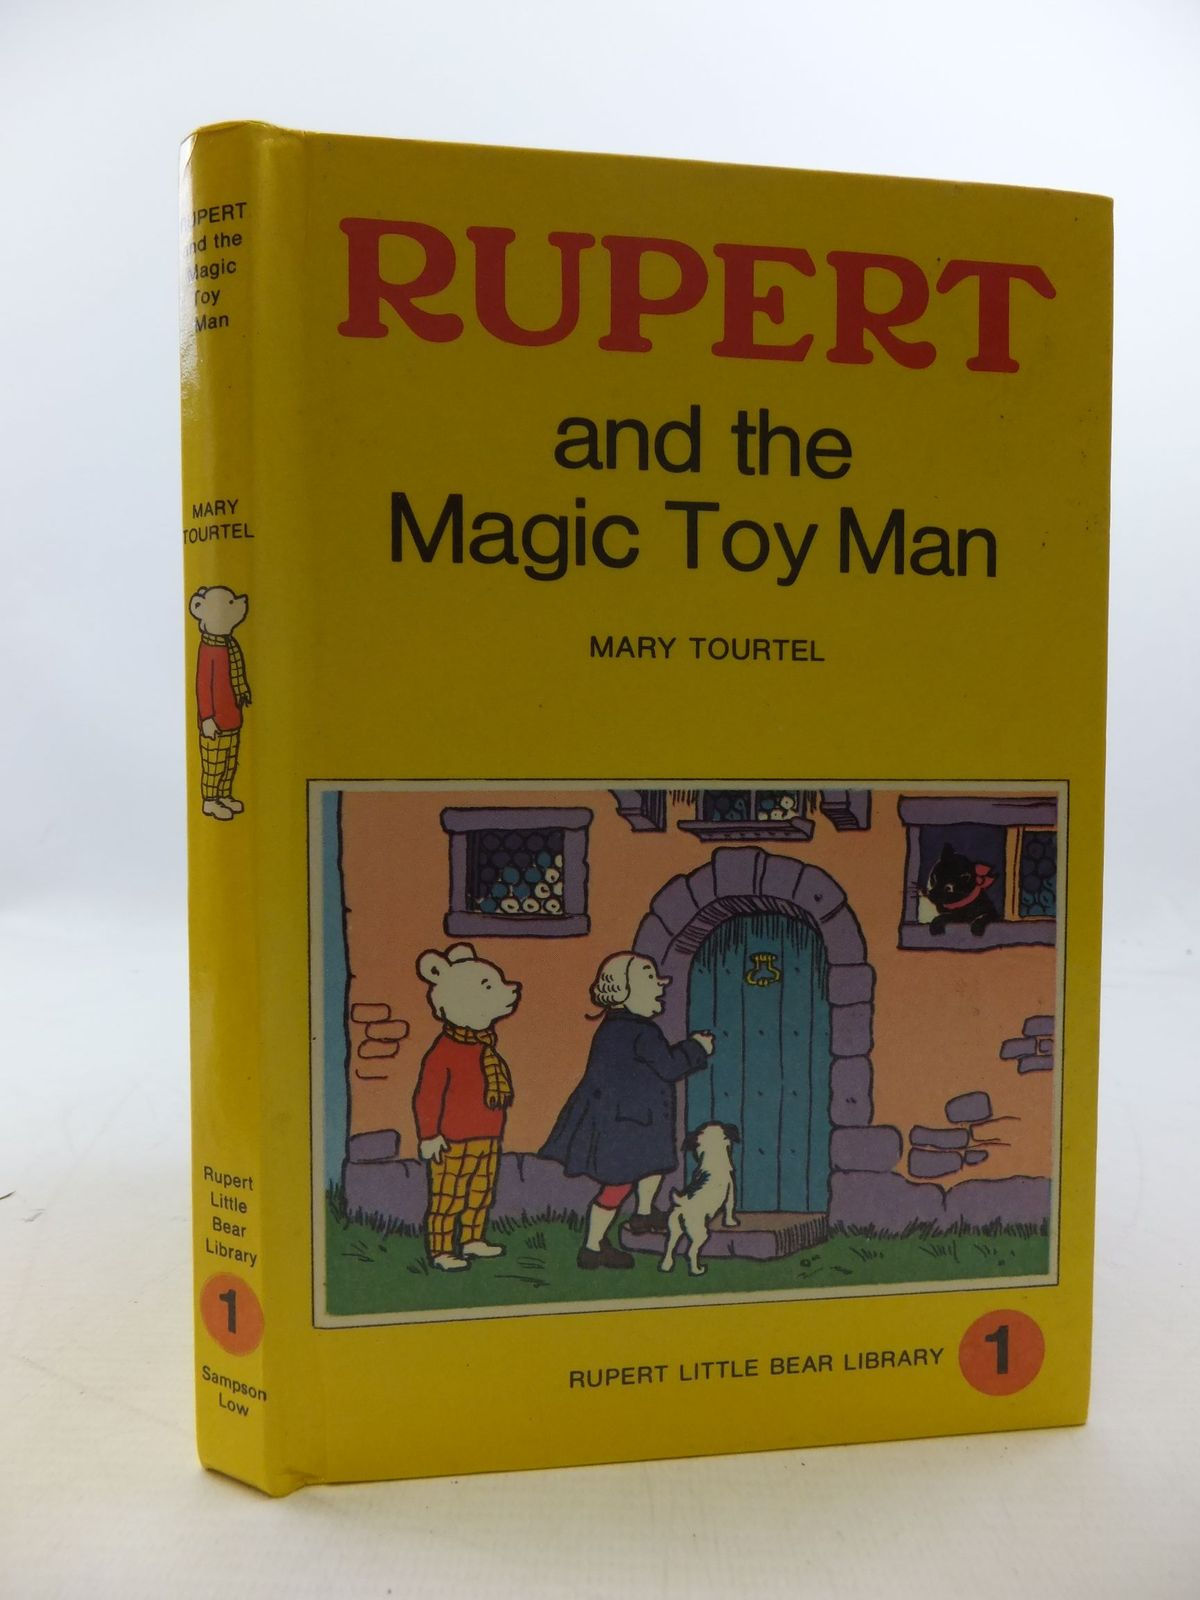 Photo of RUPERT AND THE MAGIC TOY MAN - RUPERT LITTLE BEAR LIBRARY No. 1 (WOOLWORTH) written by Tourtel, Mary illustrated by Tourtel, Mary published by Sampson Low, Marston & Co. Ltd. (STOCK CODE: 2112758)  for sale by Stella & Rose's Books